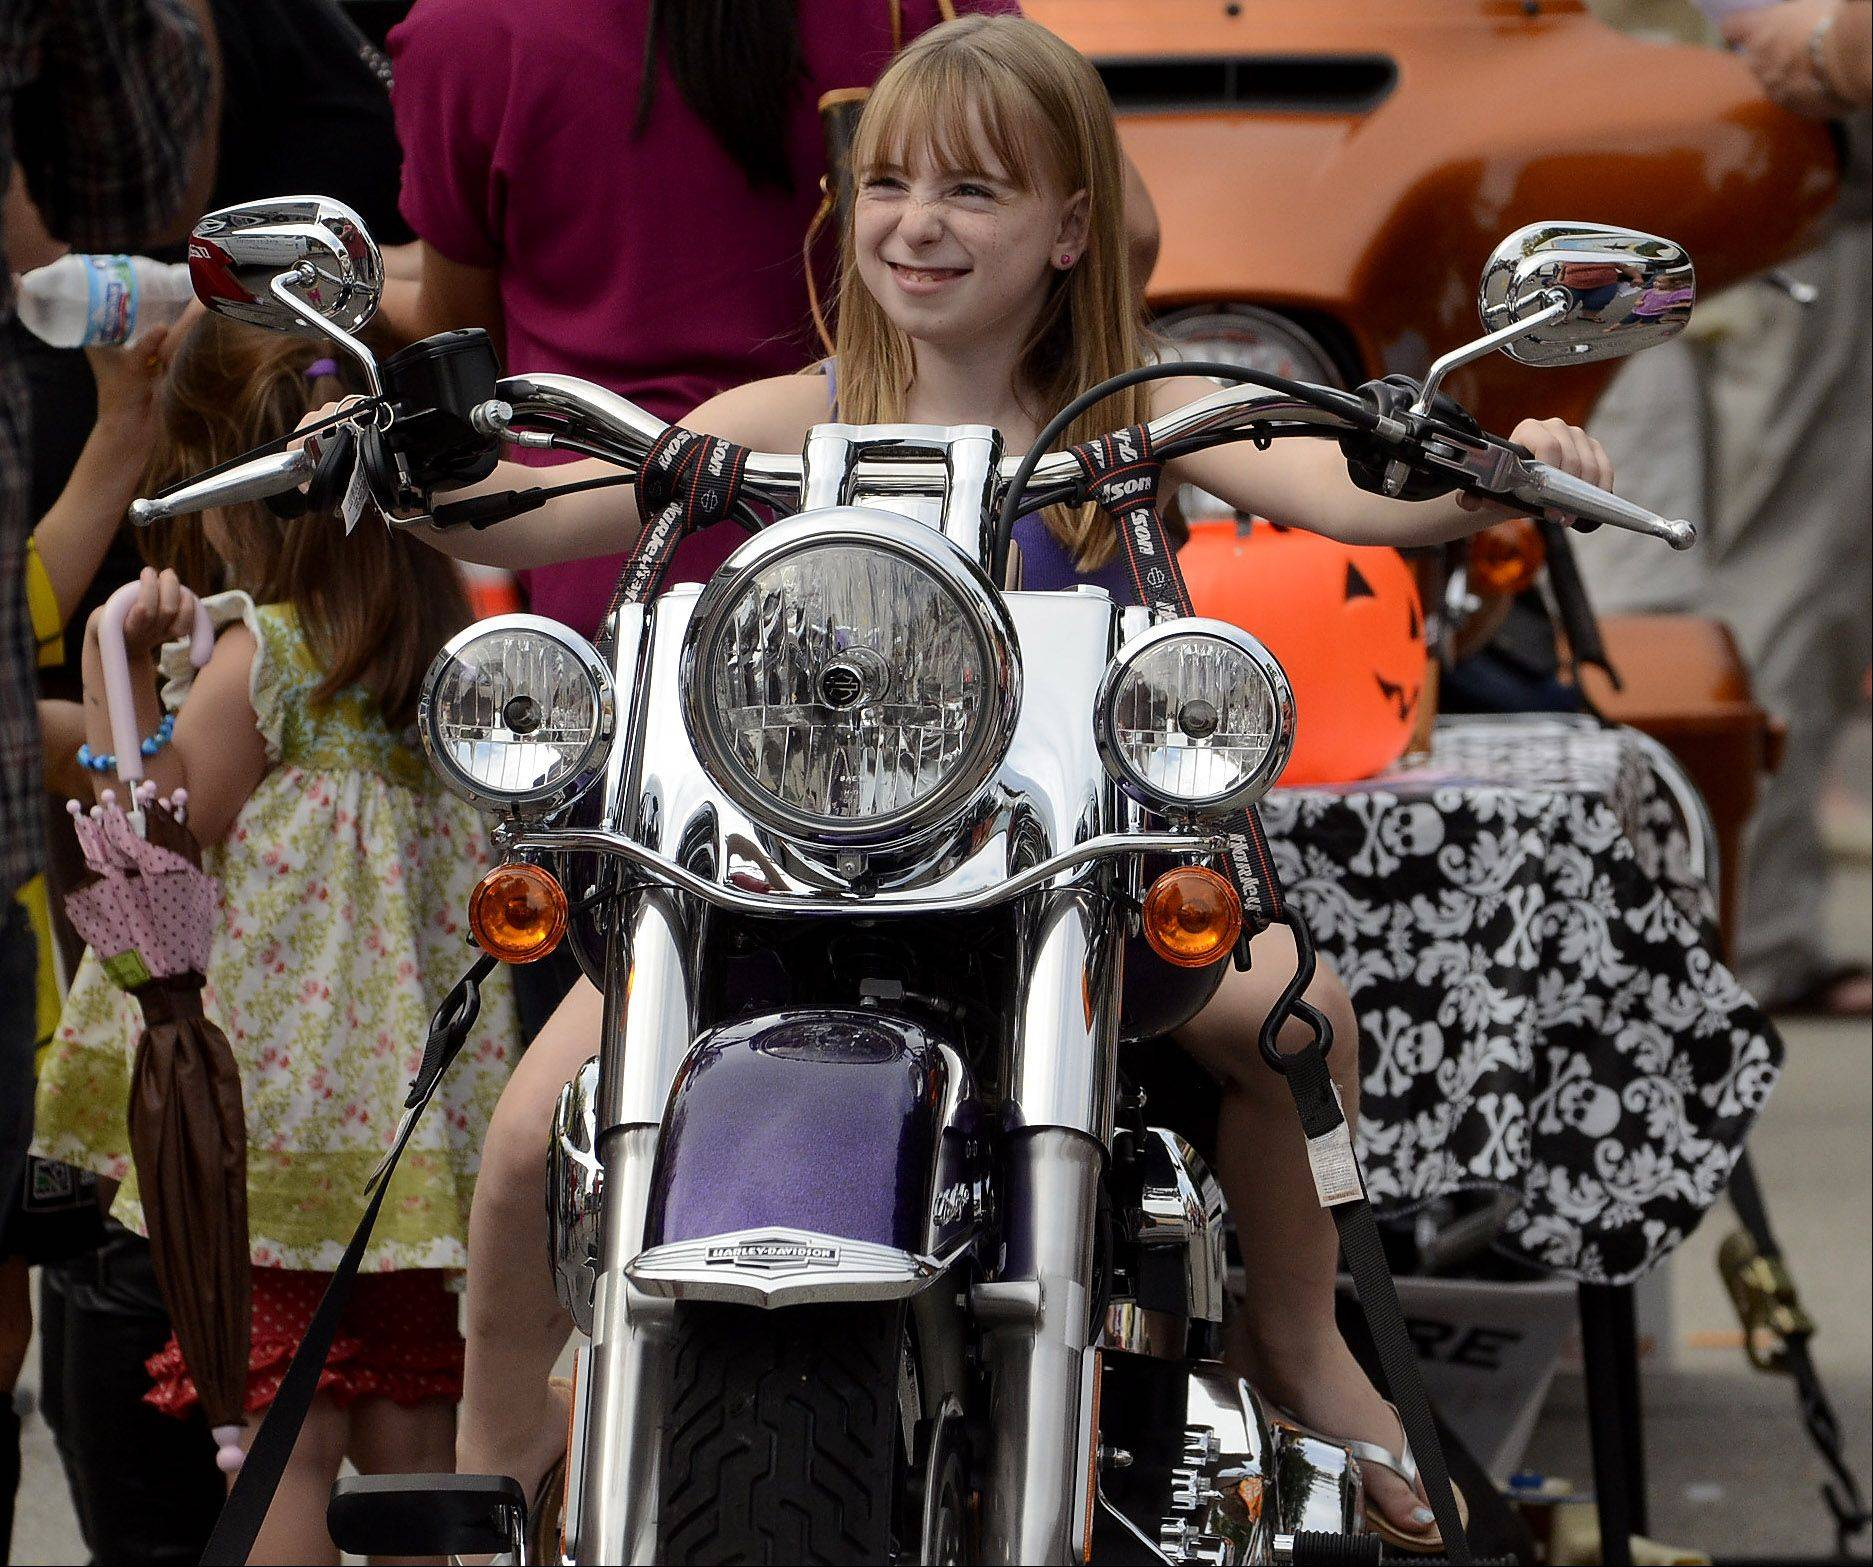 8-year-old Mia Lacey, of Libertyville, gets to sit atop a motorcycle courtesy of Lake Shore Harley-Davidson at the Libertyville Pumpkin Fest.